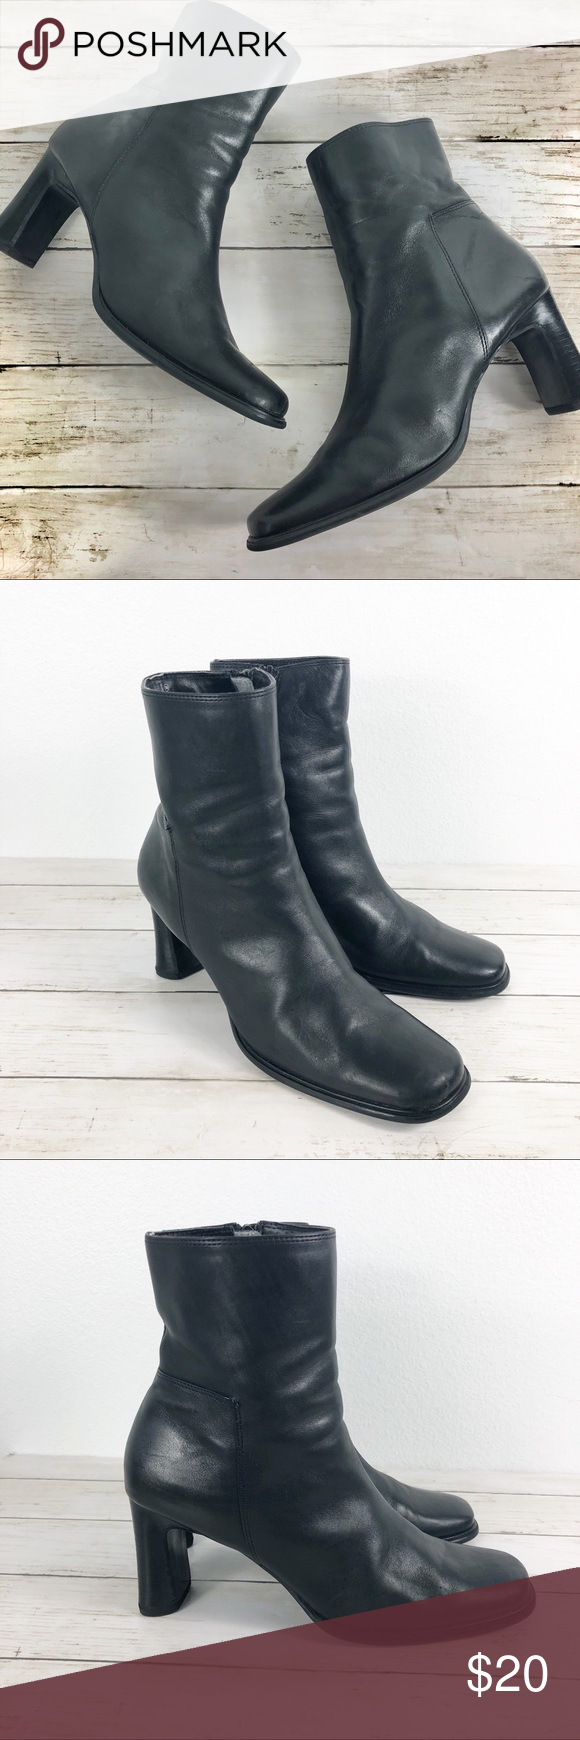 Stainless ankle boots